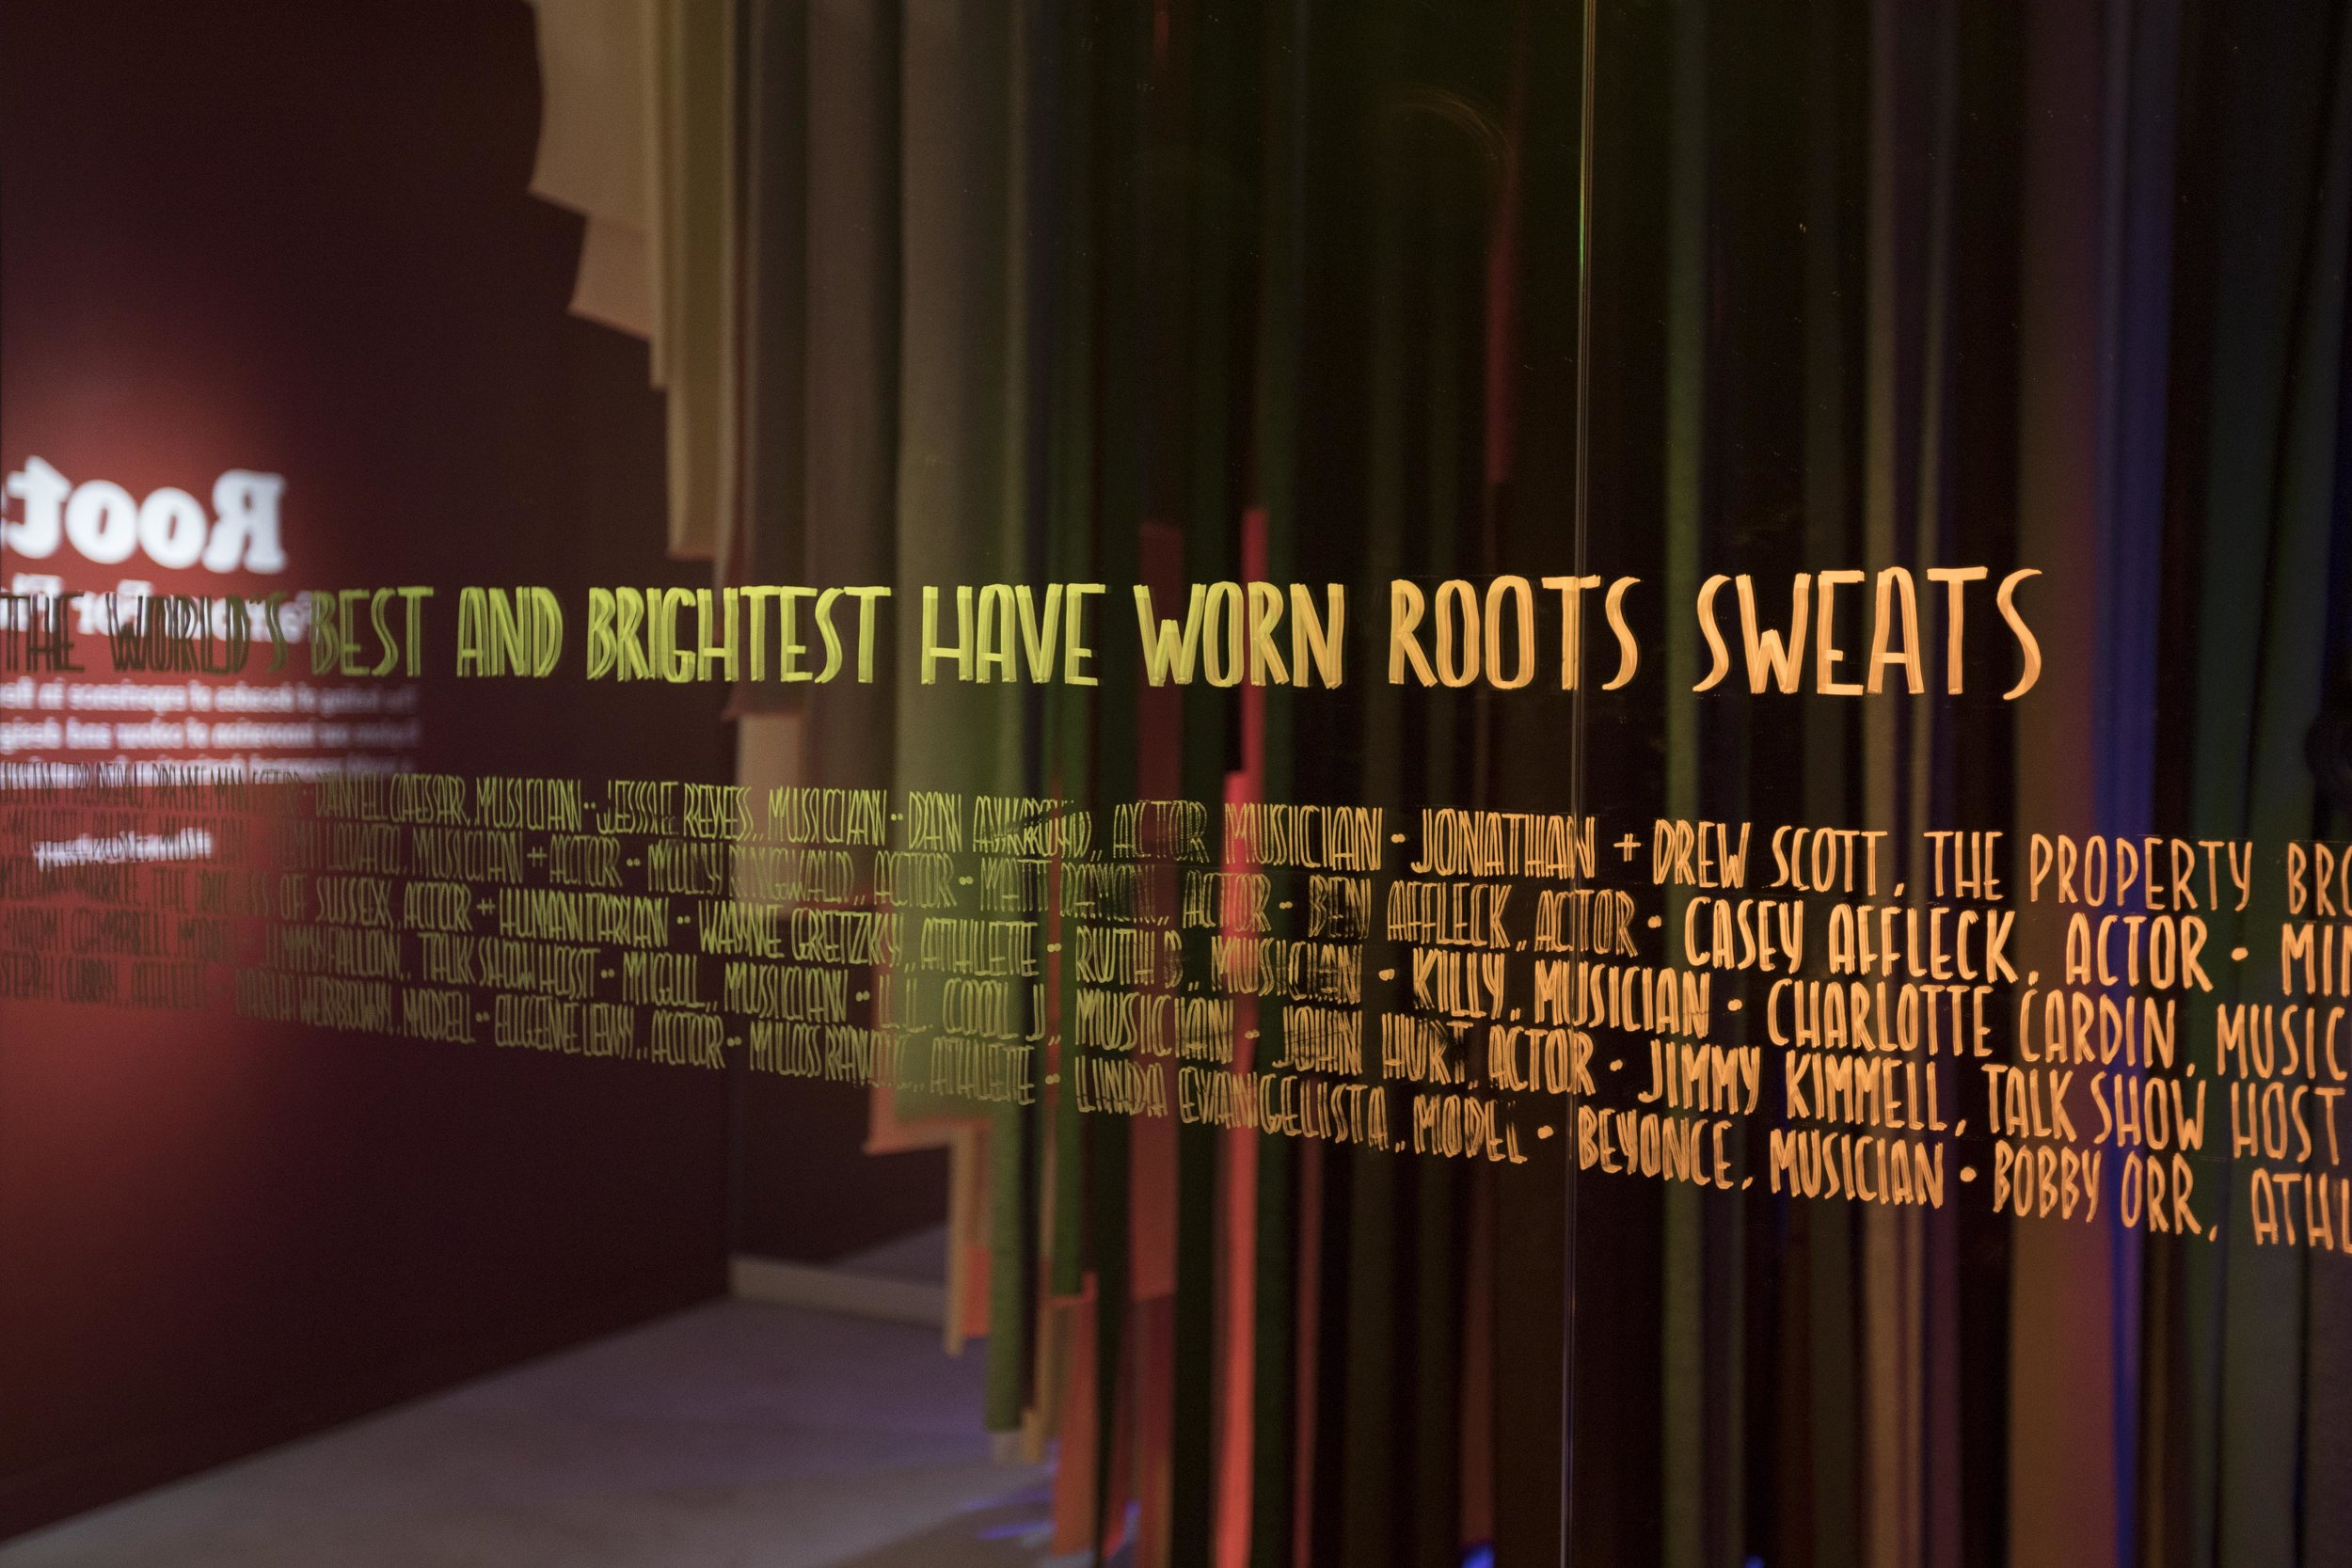 Famous Friends of Roots, in the Famous Fleece installation, at Roots Legends on Newbury.